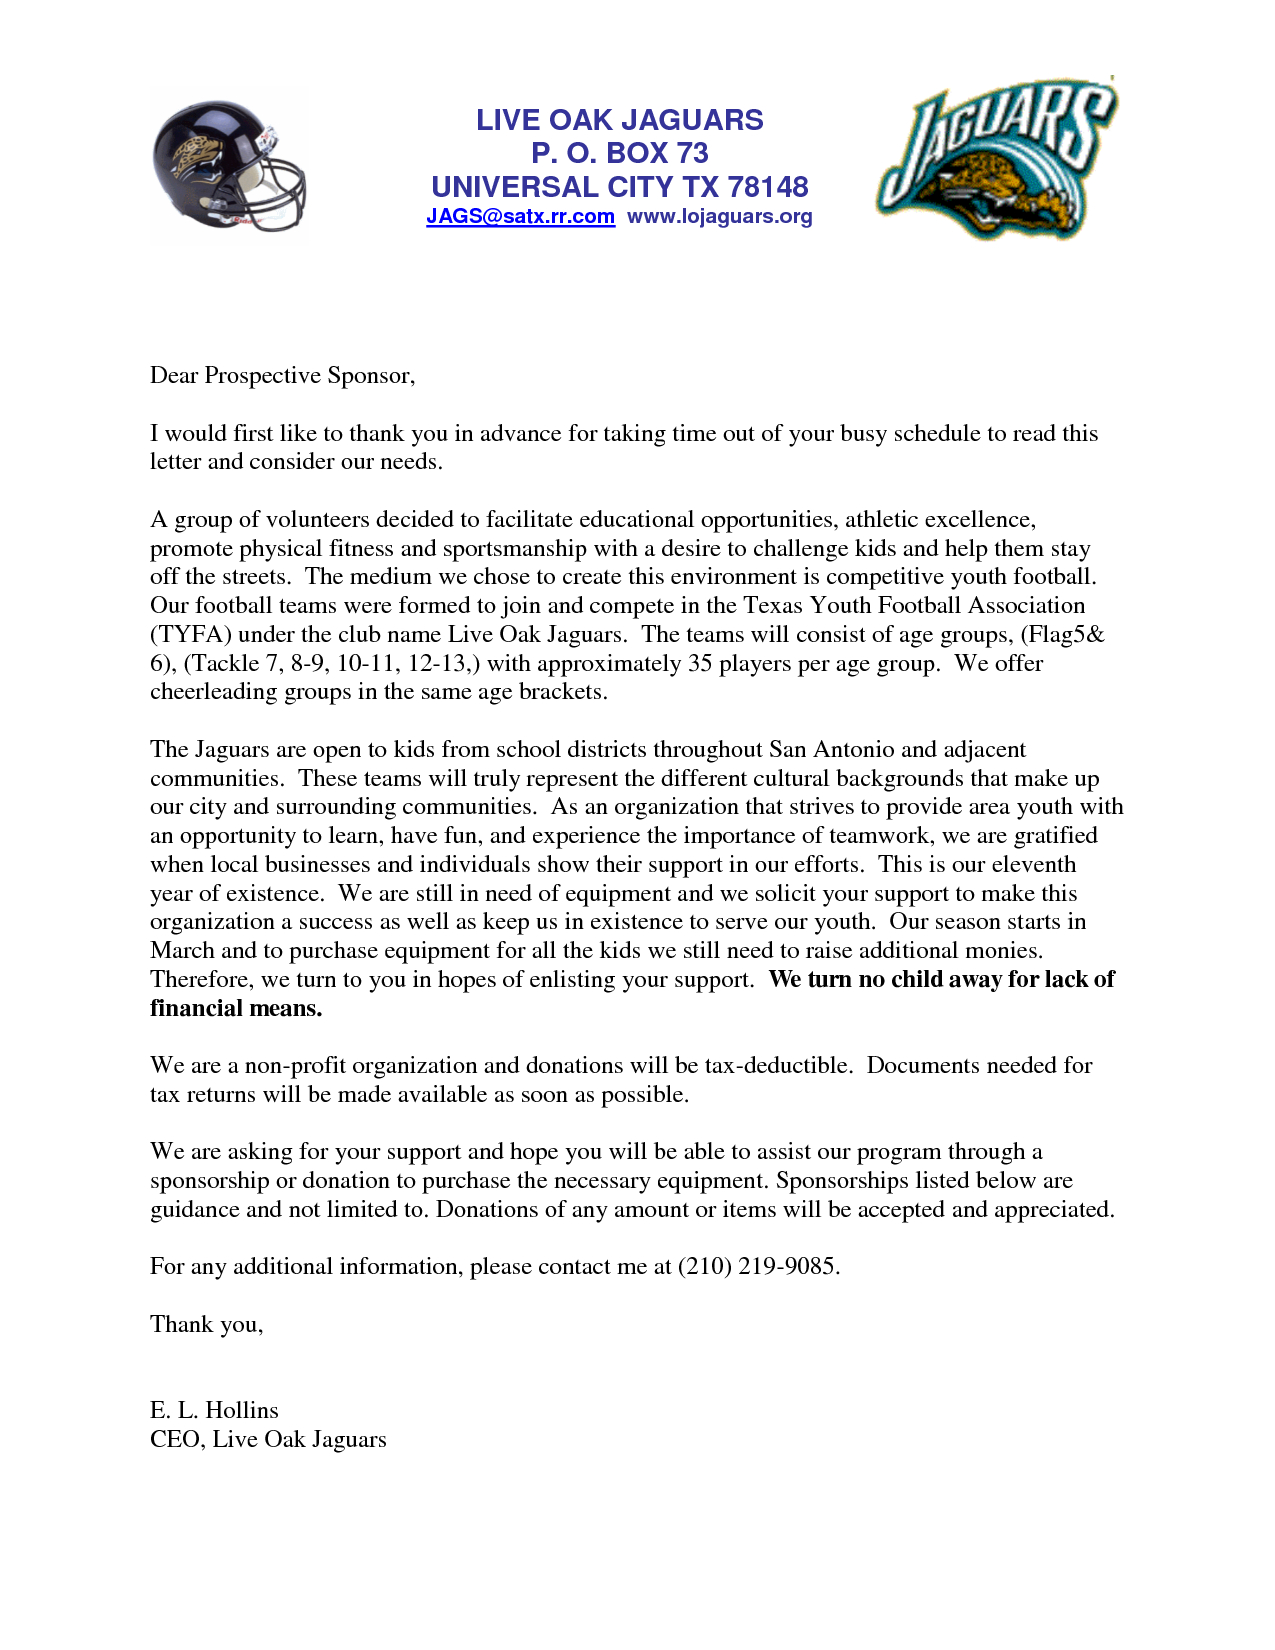 Youth Football Sponsorship Letter Template - Letters for Sports Teams Youth Sponsorship Letter Team Please Note